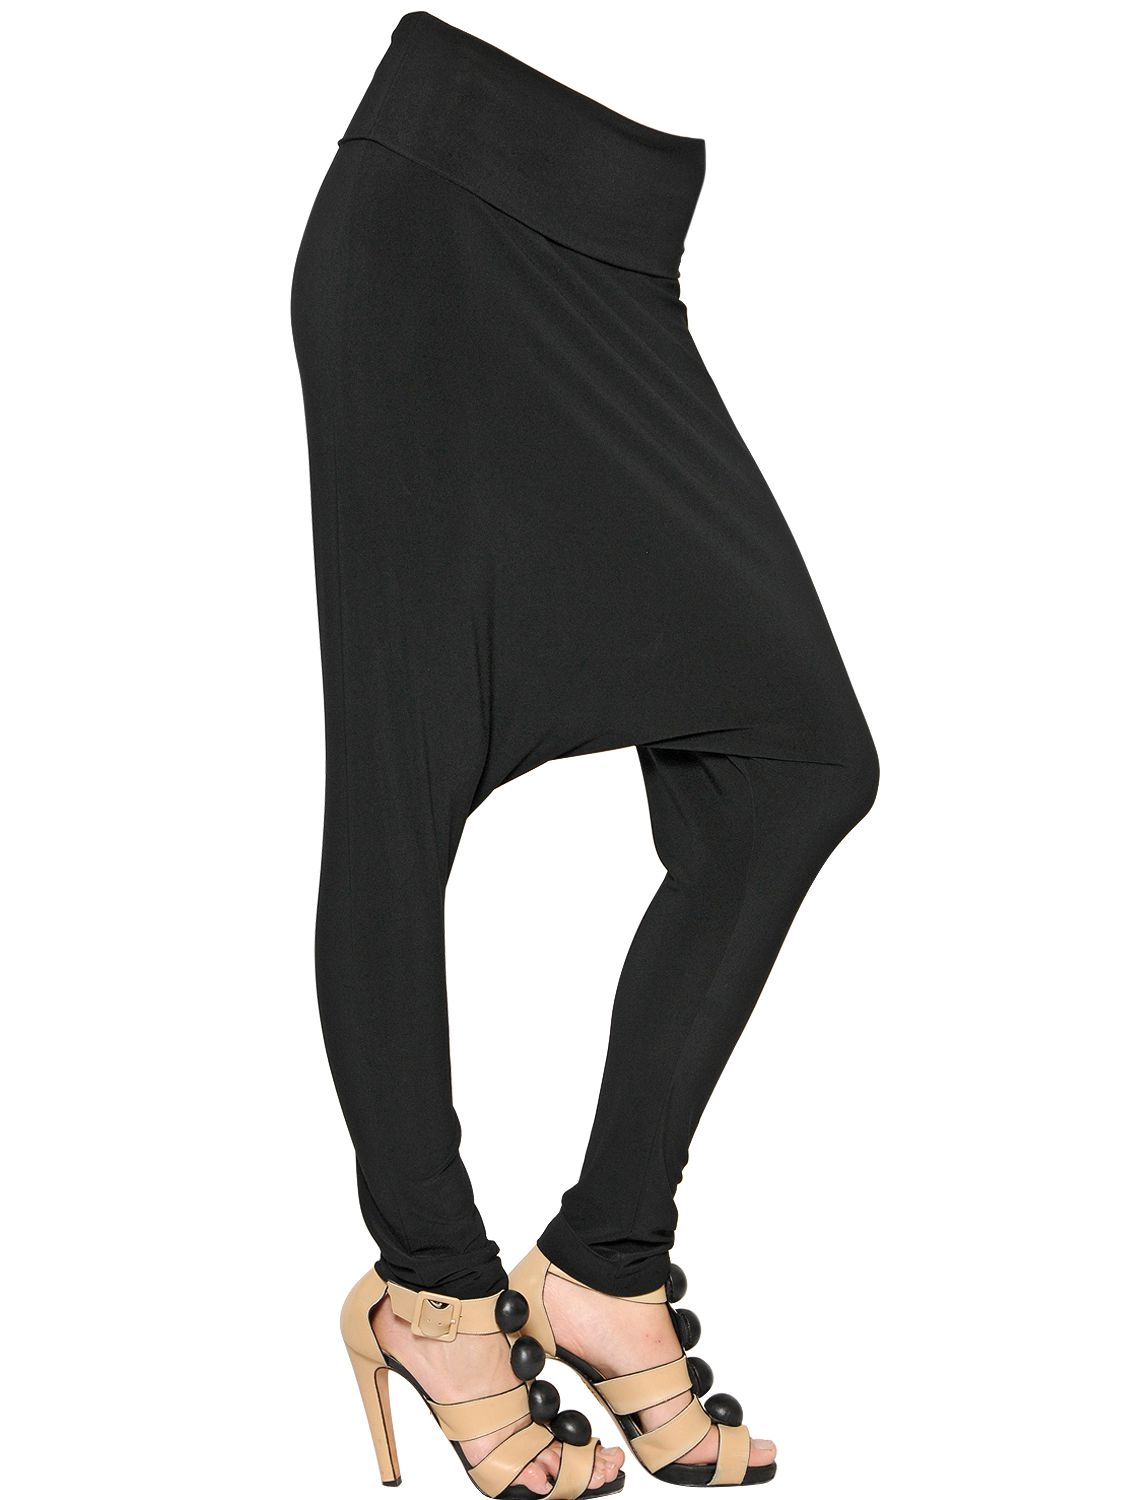 Find great deals on eBay for sarouel pants. Shop with confidence.